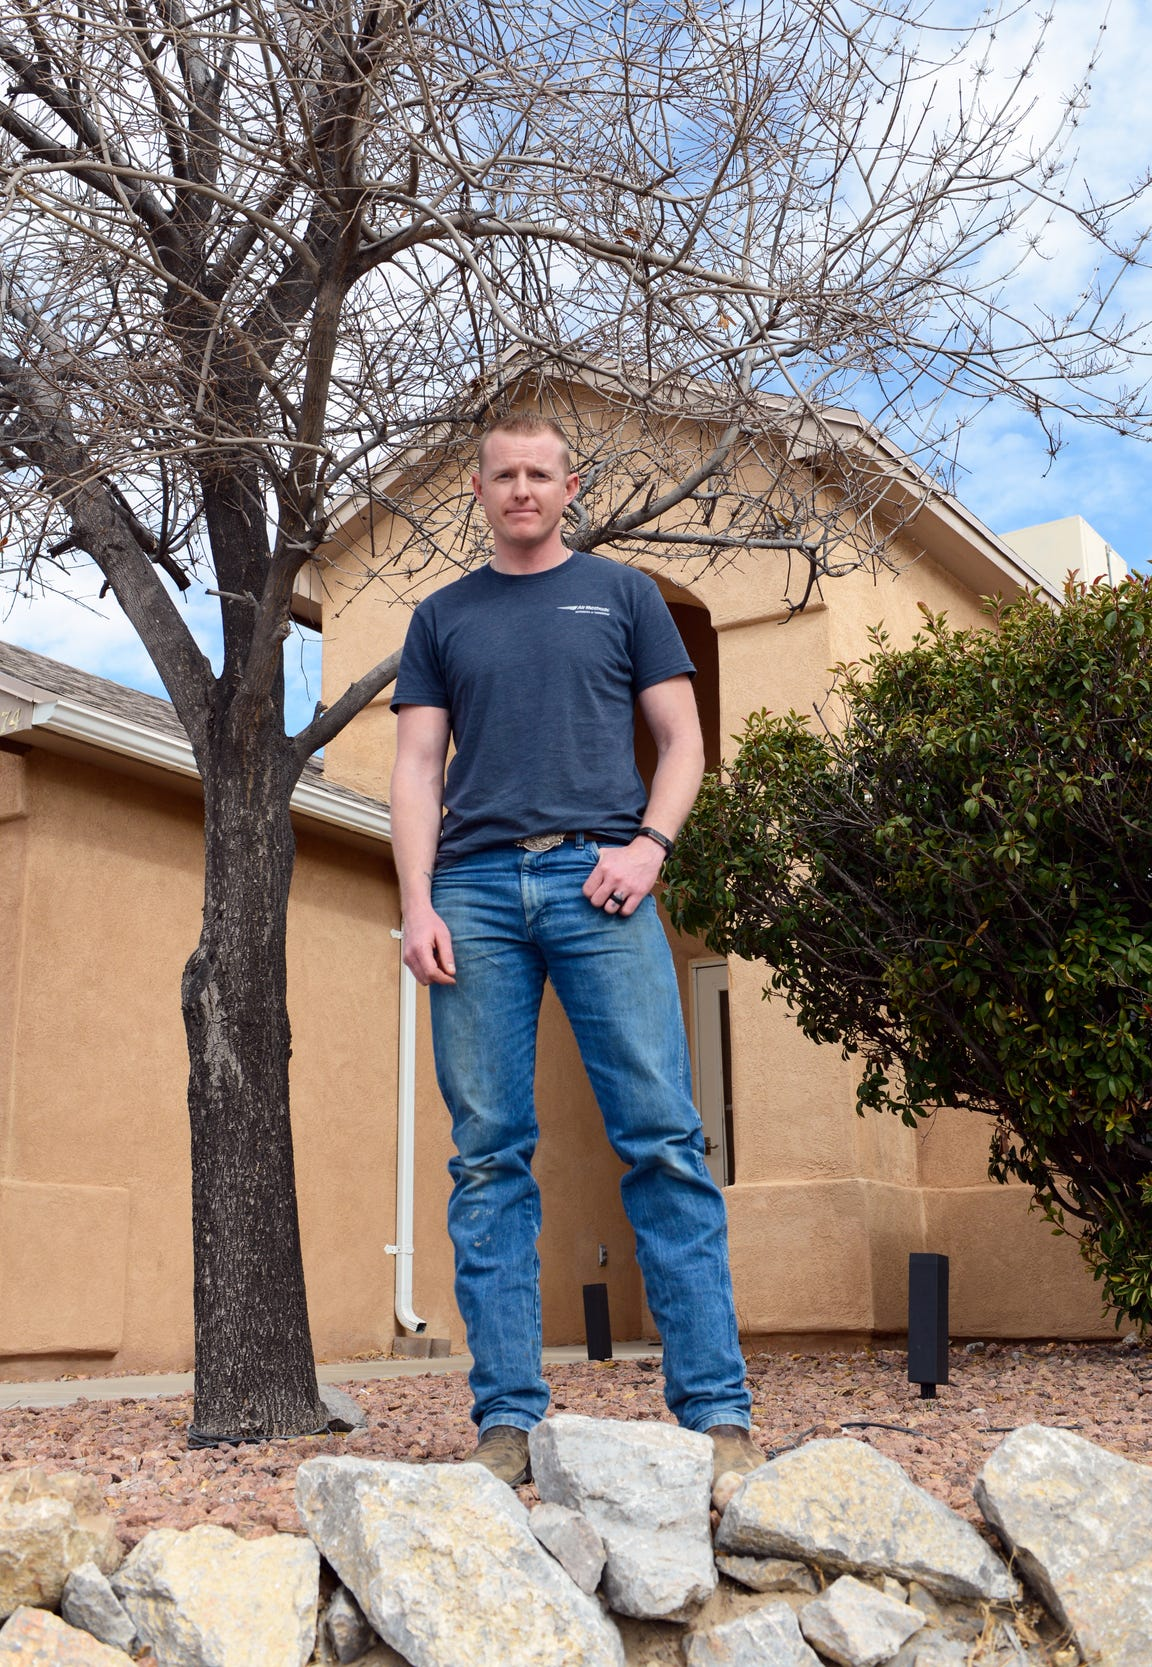 Travis Hart, a Las Cruces firefighter, is believed to have contracted valley fever at age 19 while working as a landscaper. He's seen here in January 2019.